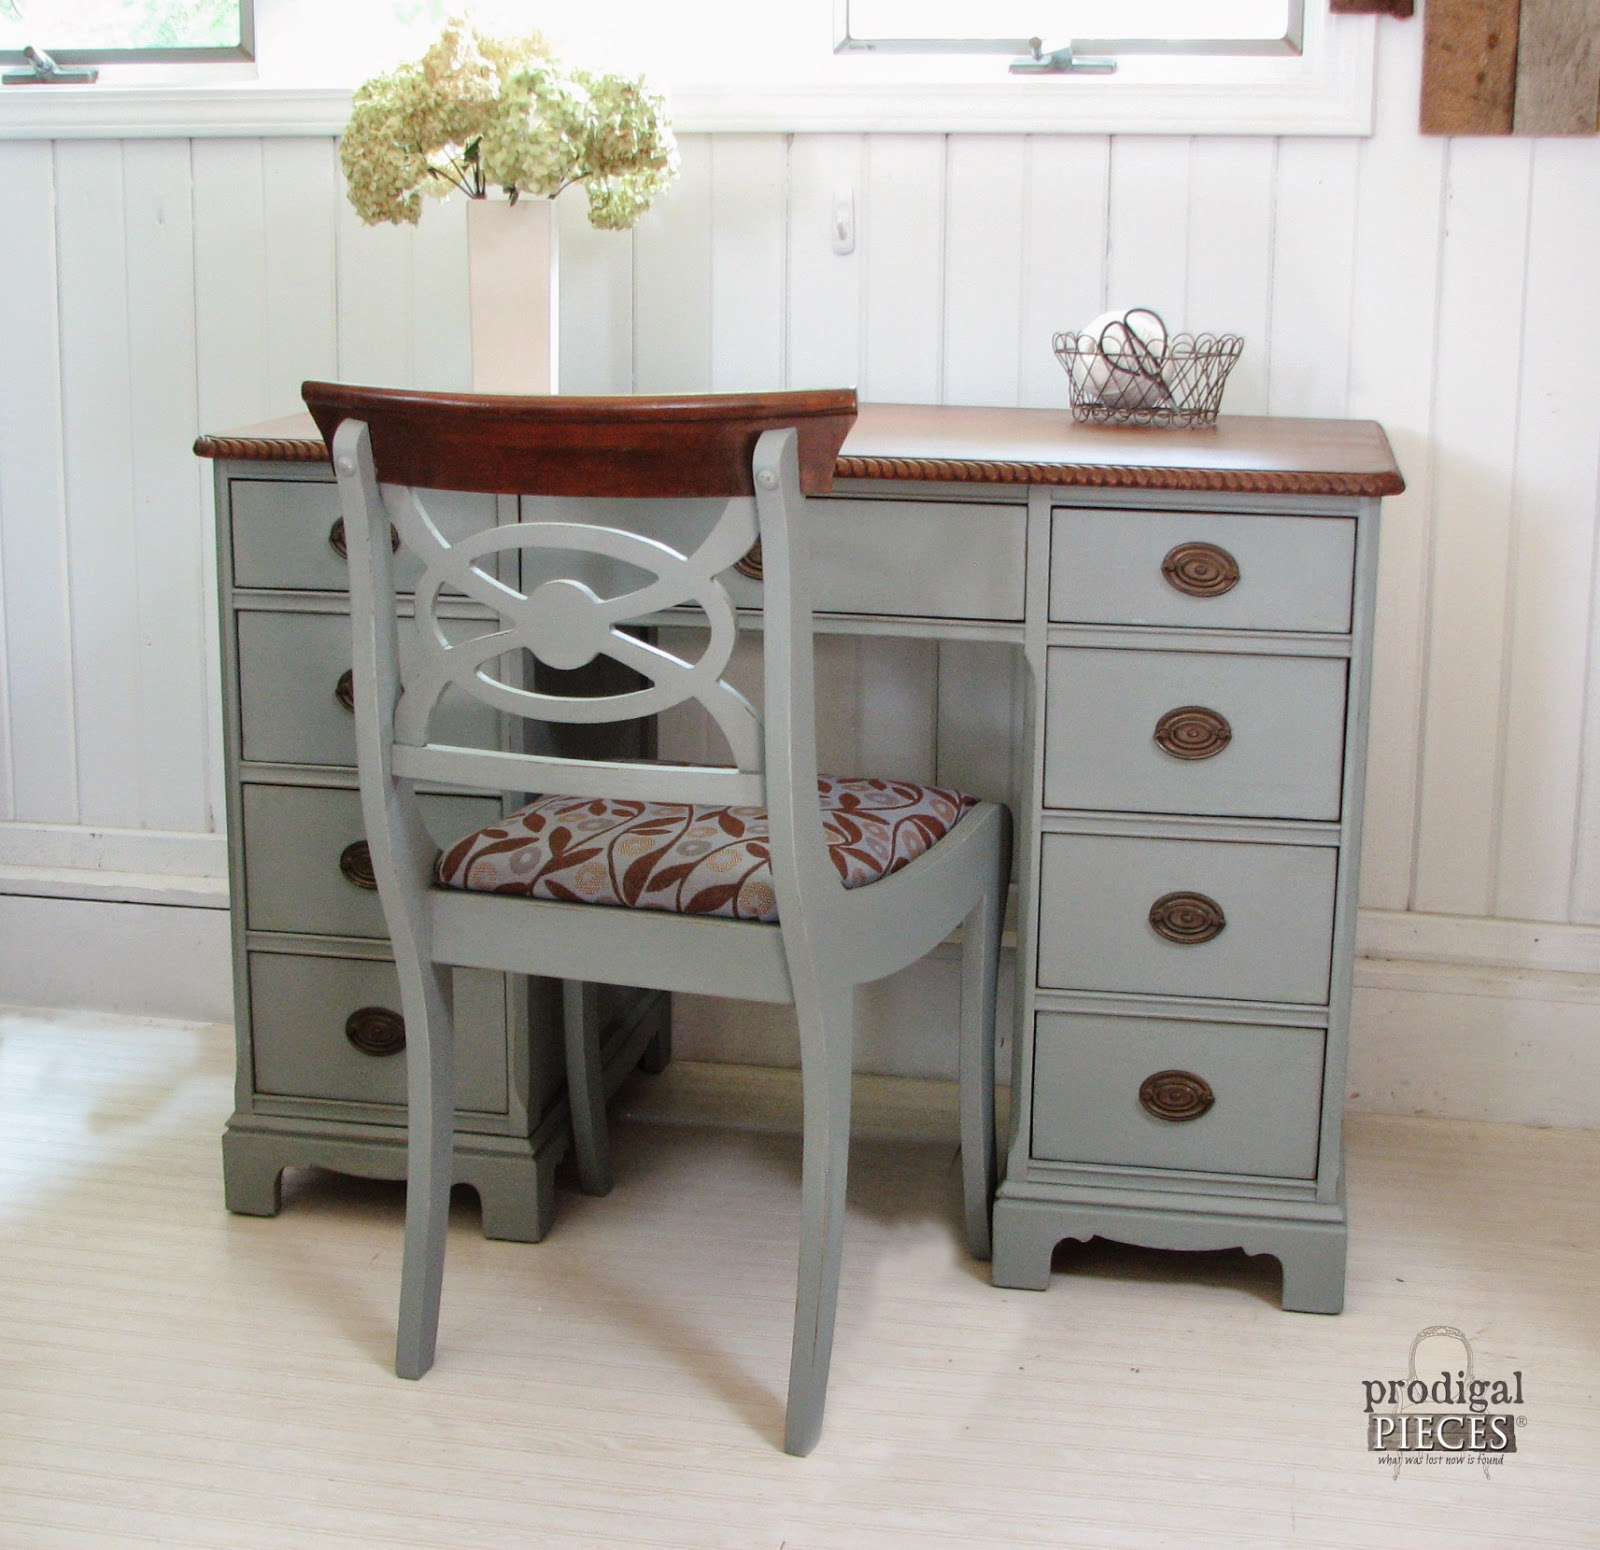 An Antique Desk Makeover by Prodigal Pieces www.prodigalpieces.com